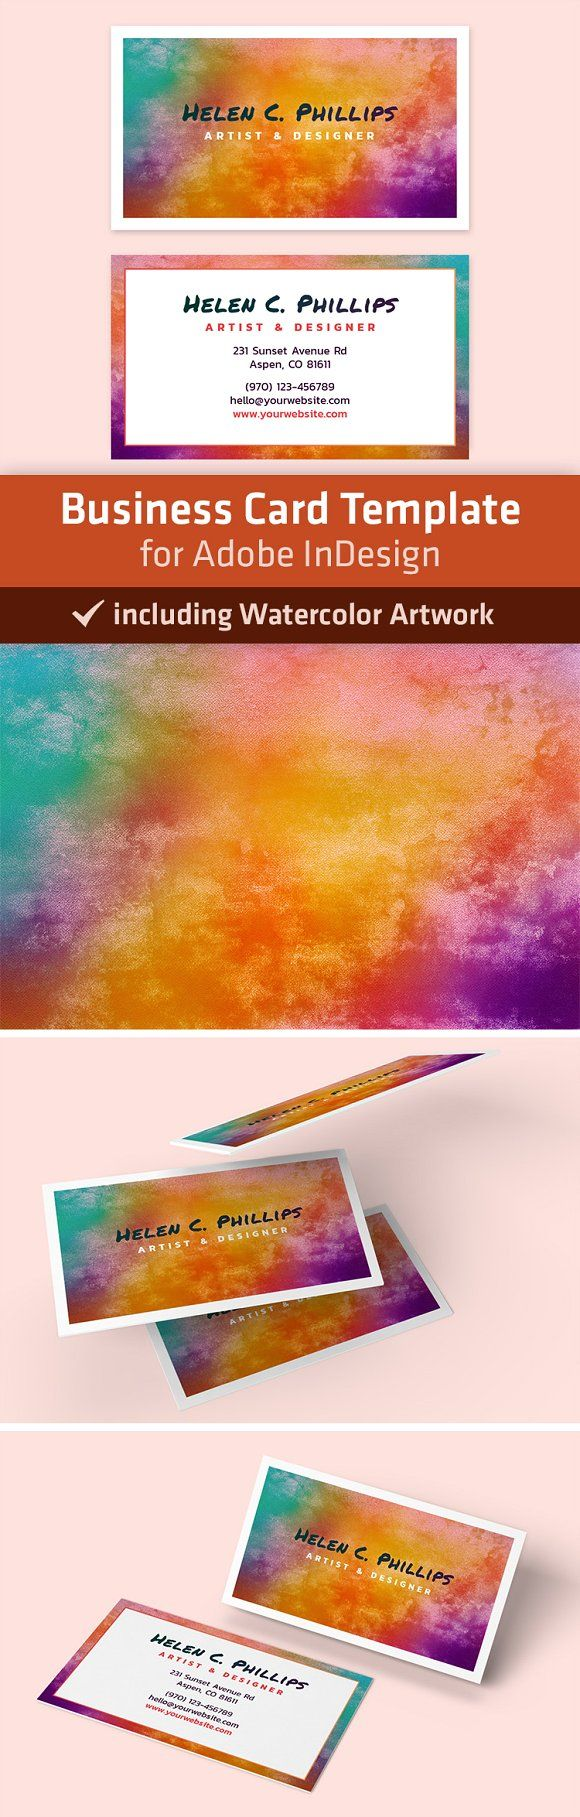 Beautiful watercolor business card template for adobe indesign beautiful watercolor business card template for adobe indesign artwork included download on creativemarket free printable reheart Gallery